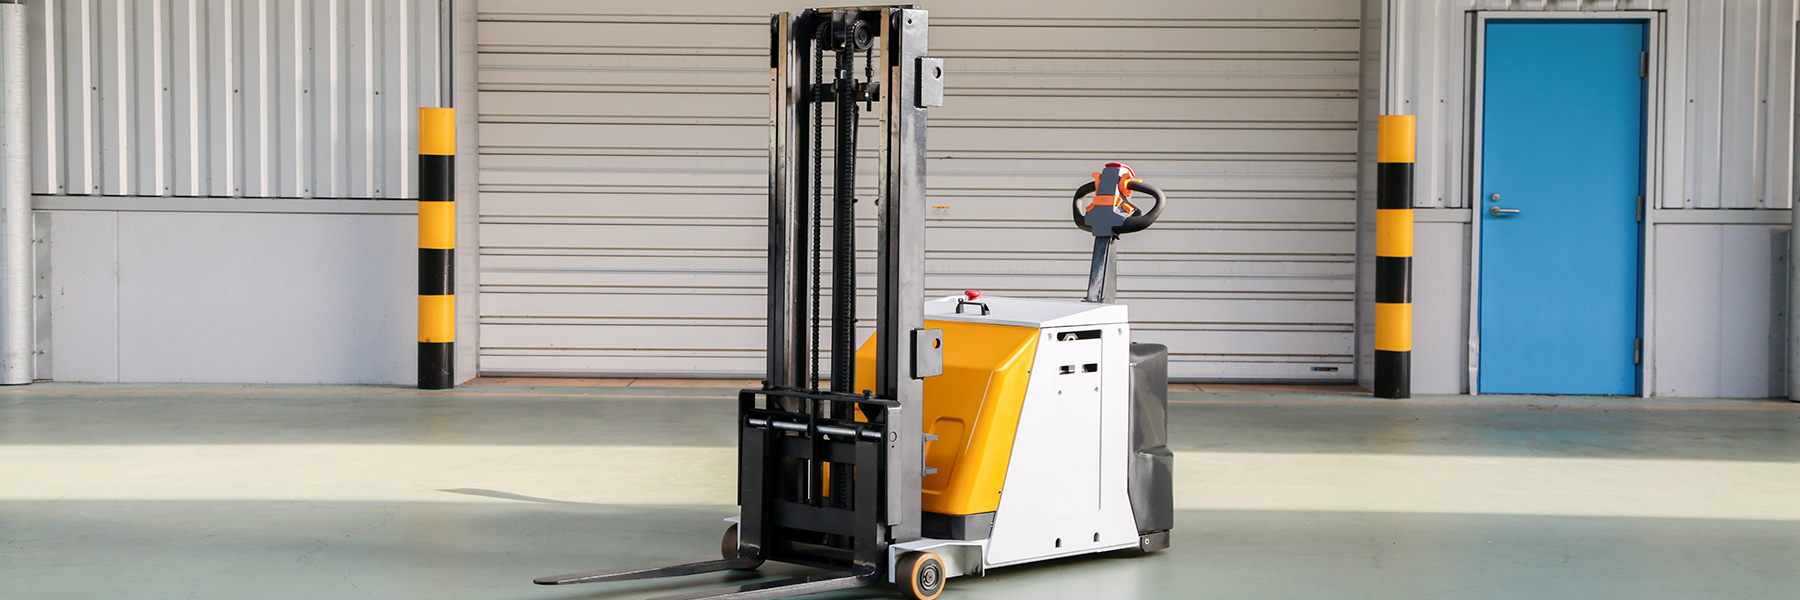 Walkie Counterbalanced Stackers